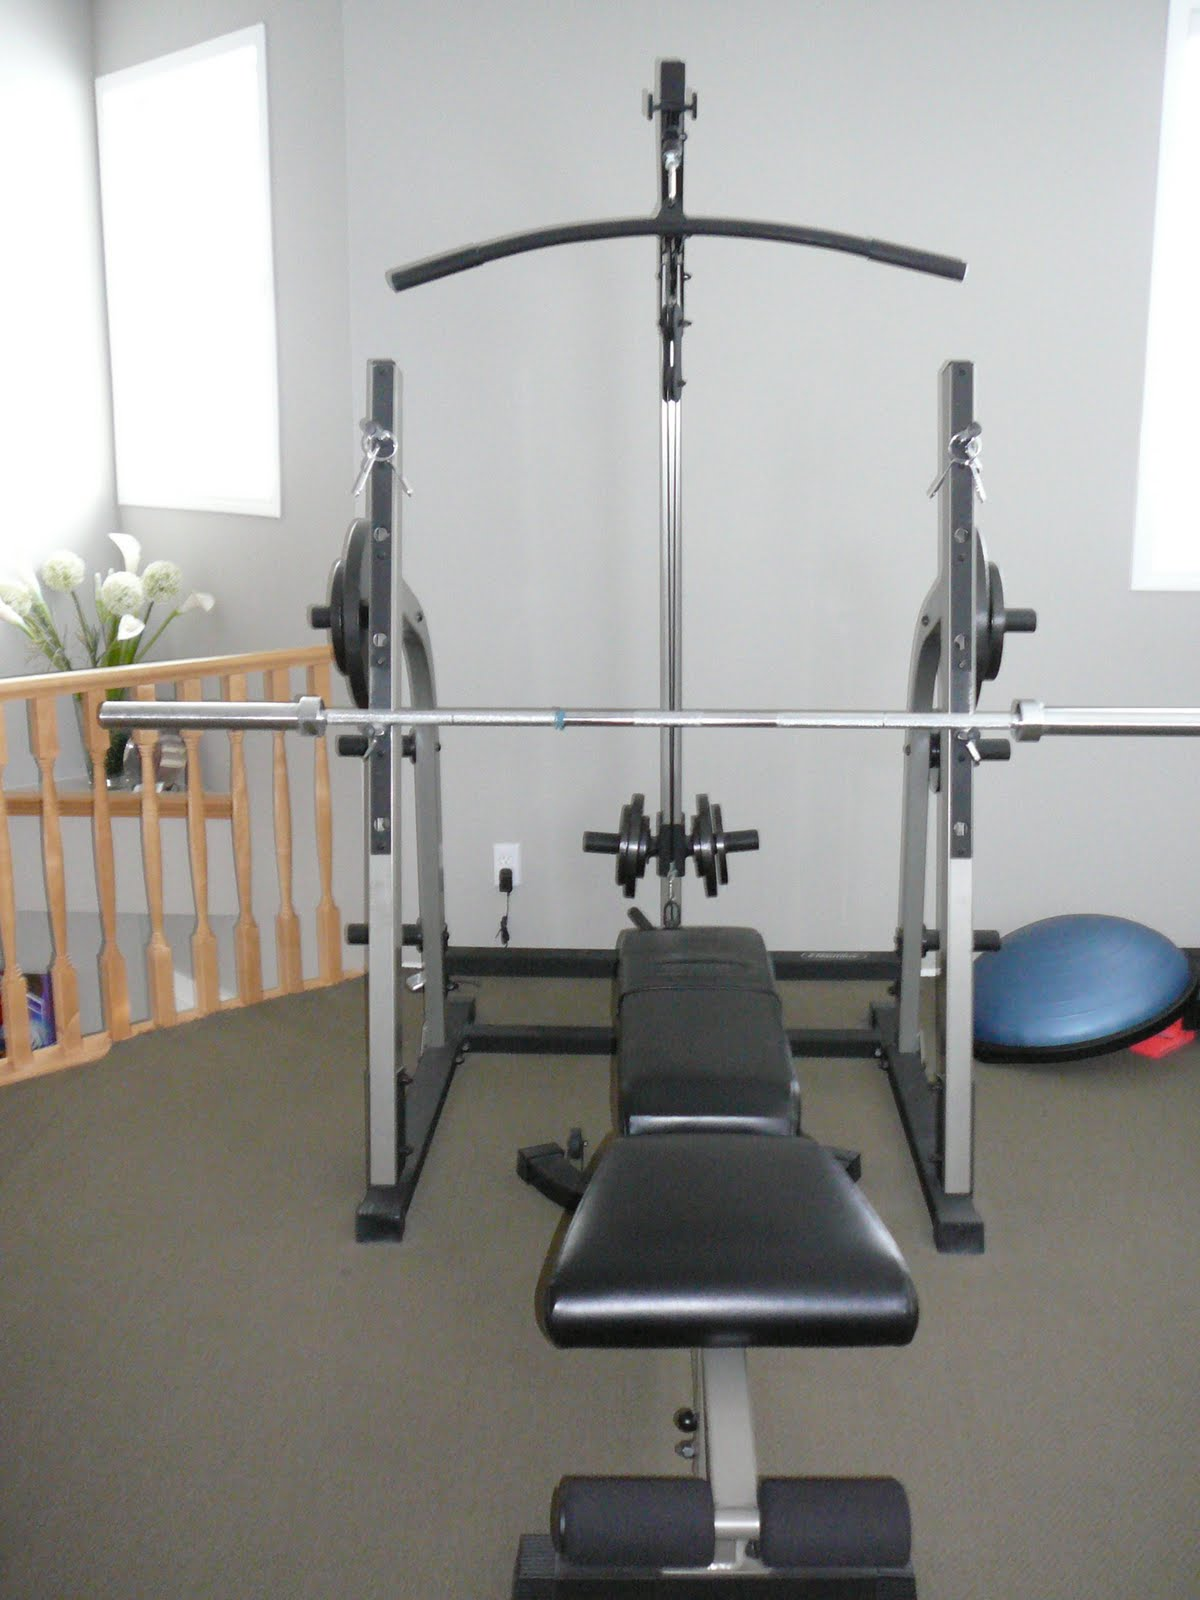 Movingsaleyyc2011 Nautilus Weight Set With Bench 600 Obo